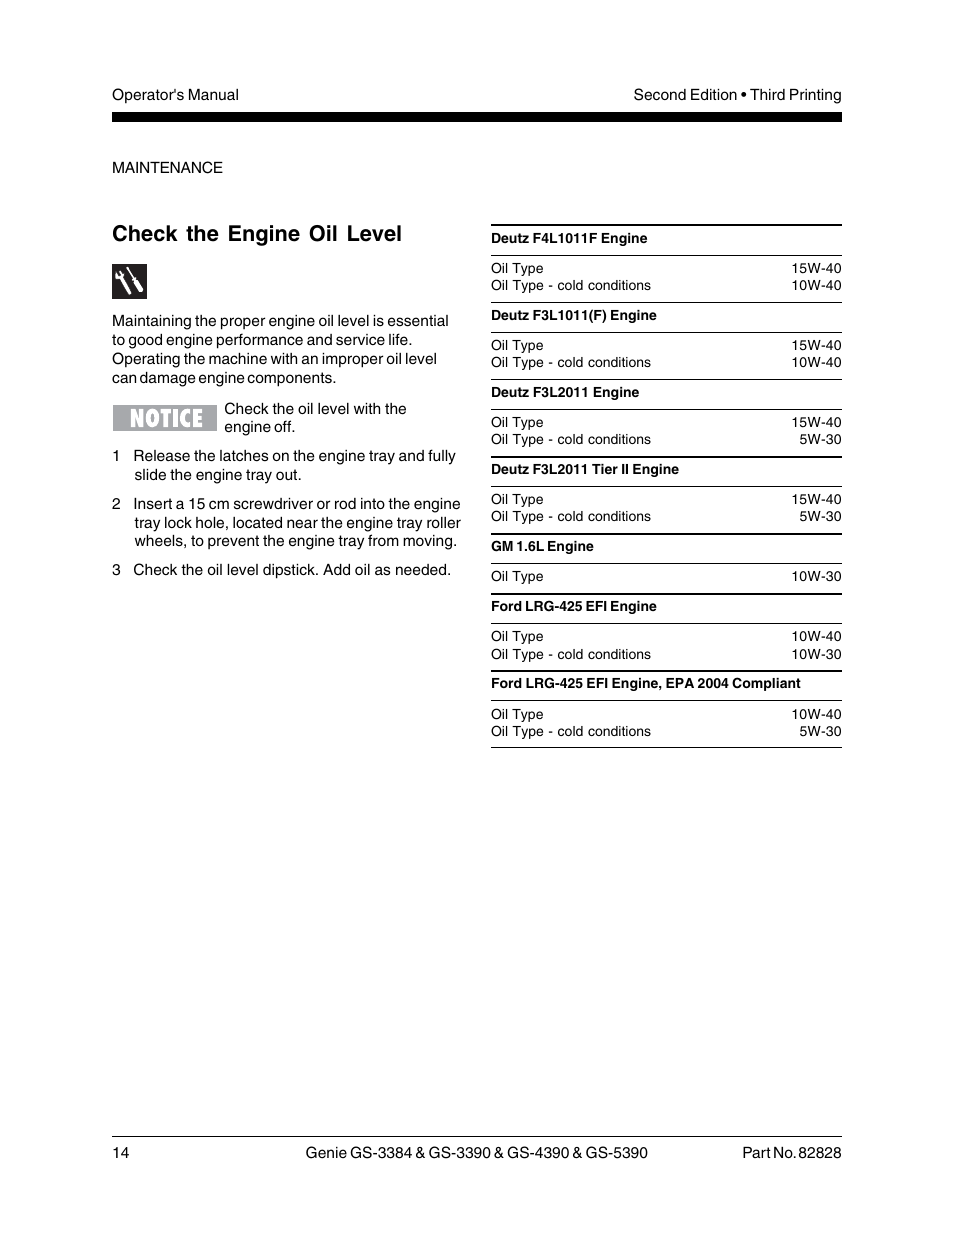 Check the engine oil level | Genie GS-5390 User Manual